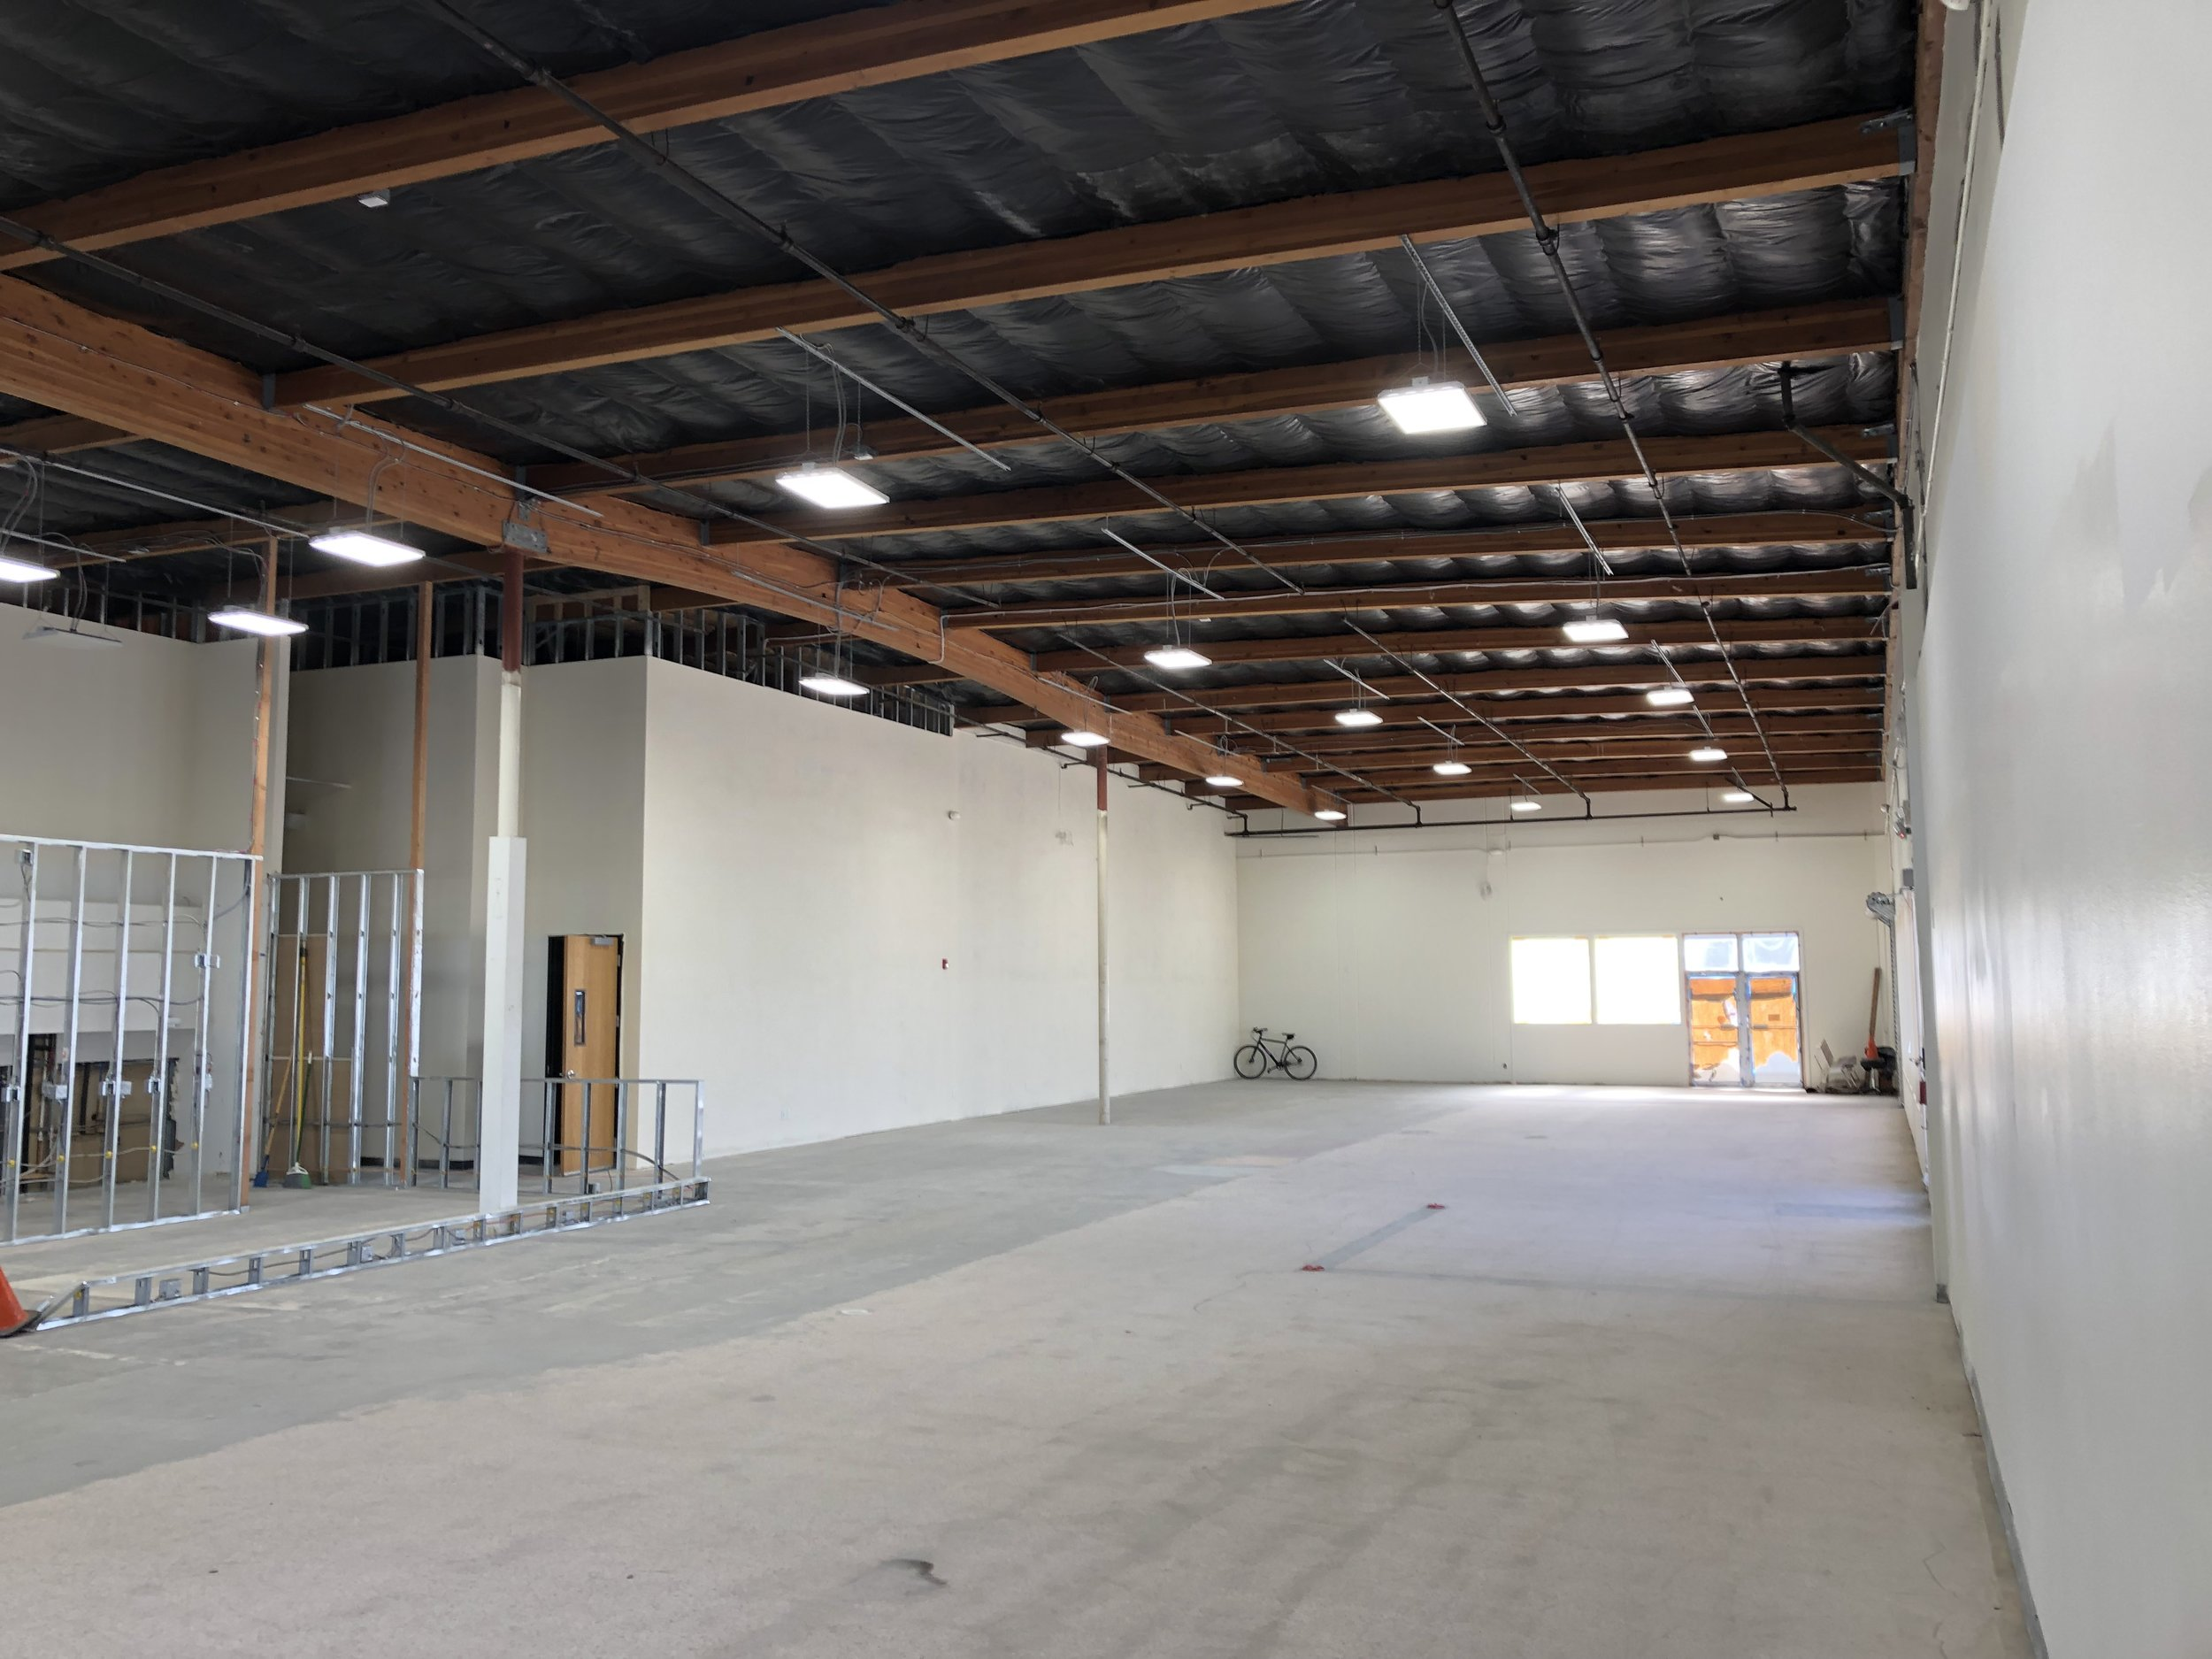 This place is BIG! Here is the main front space, 120' x 41', bigger than the old gym all by itself and there is another 5000+ sq ft. to play with.